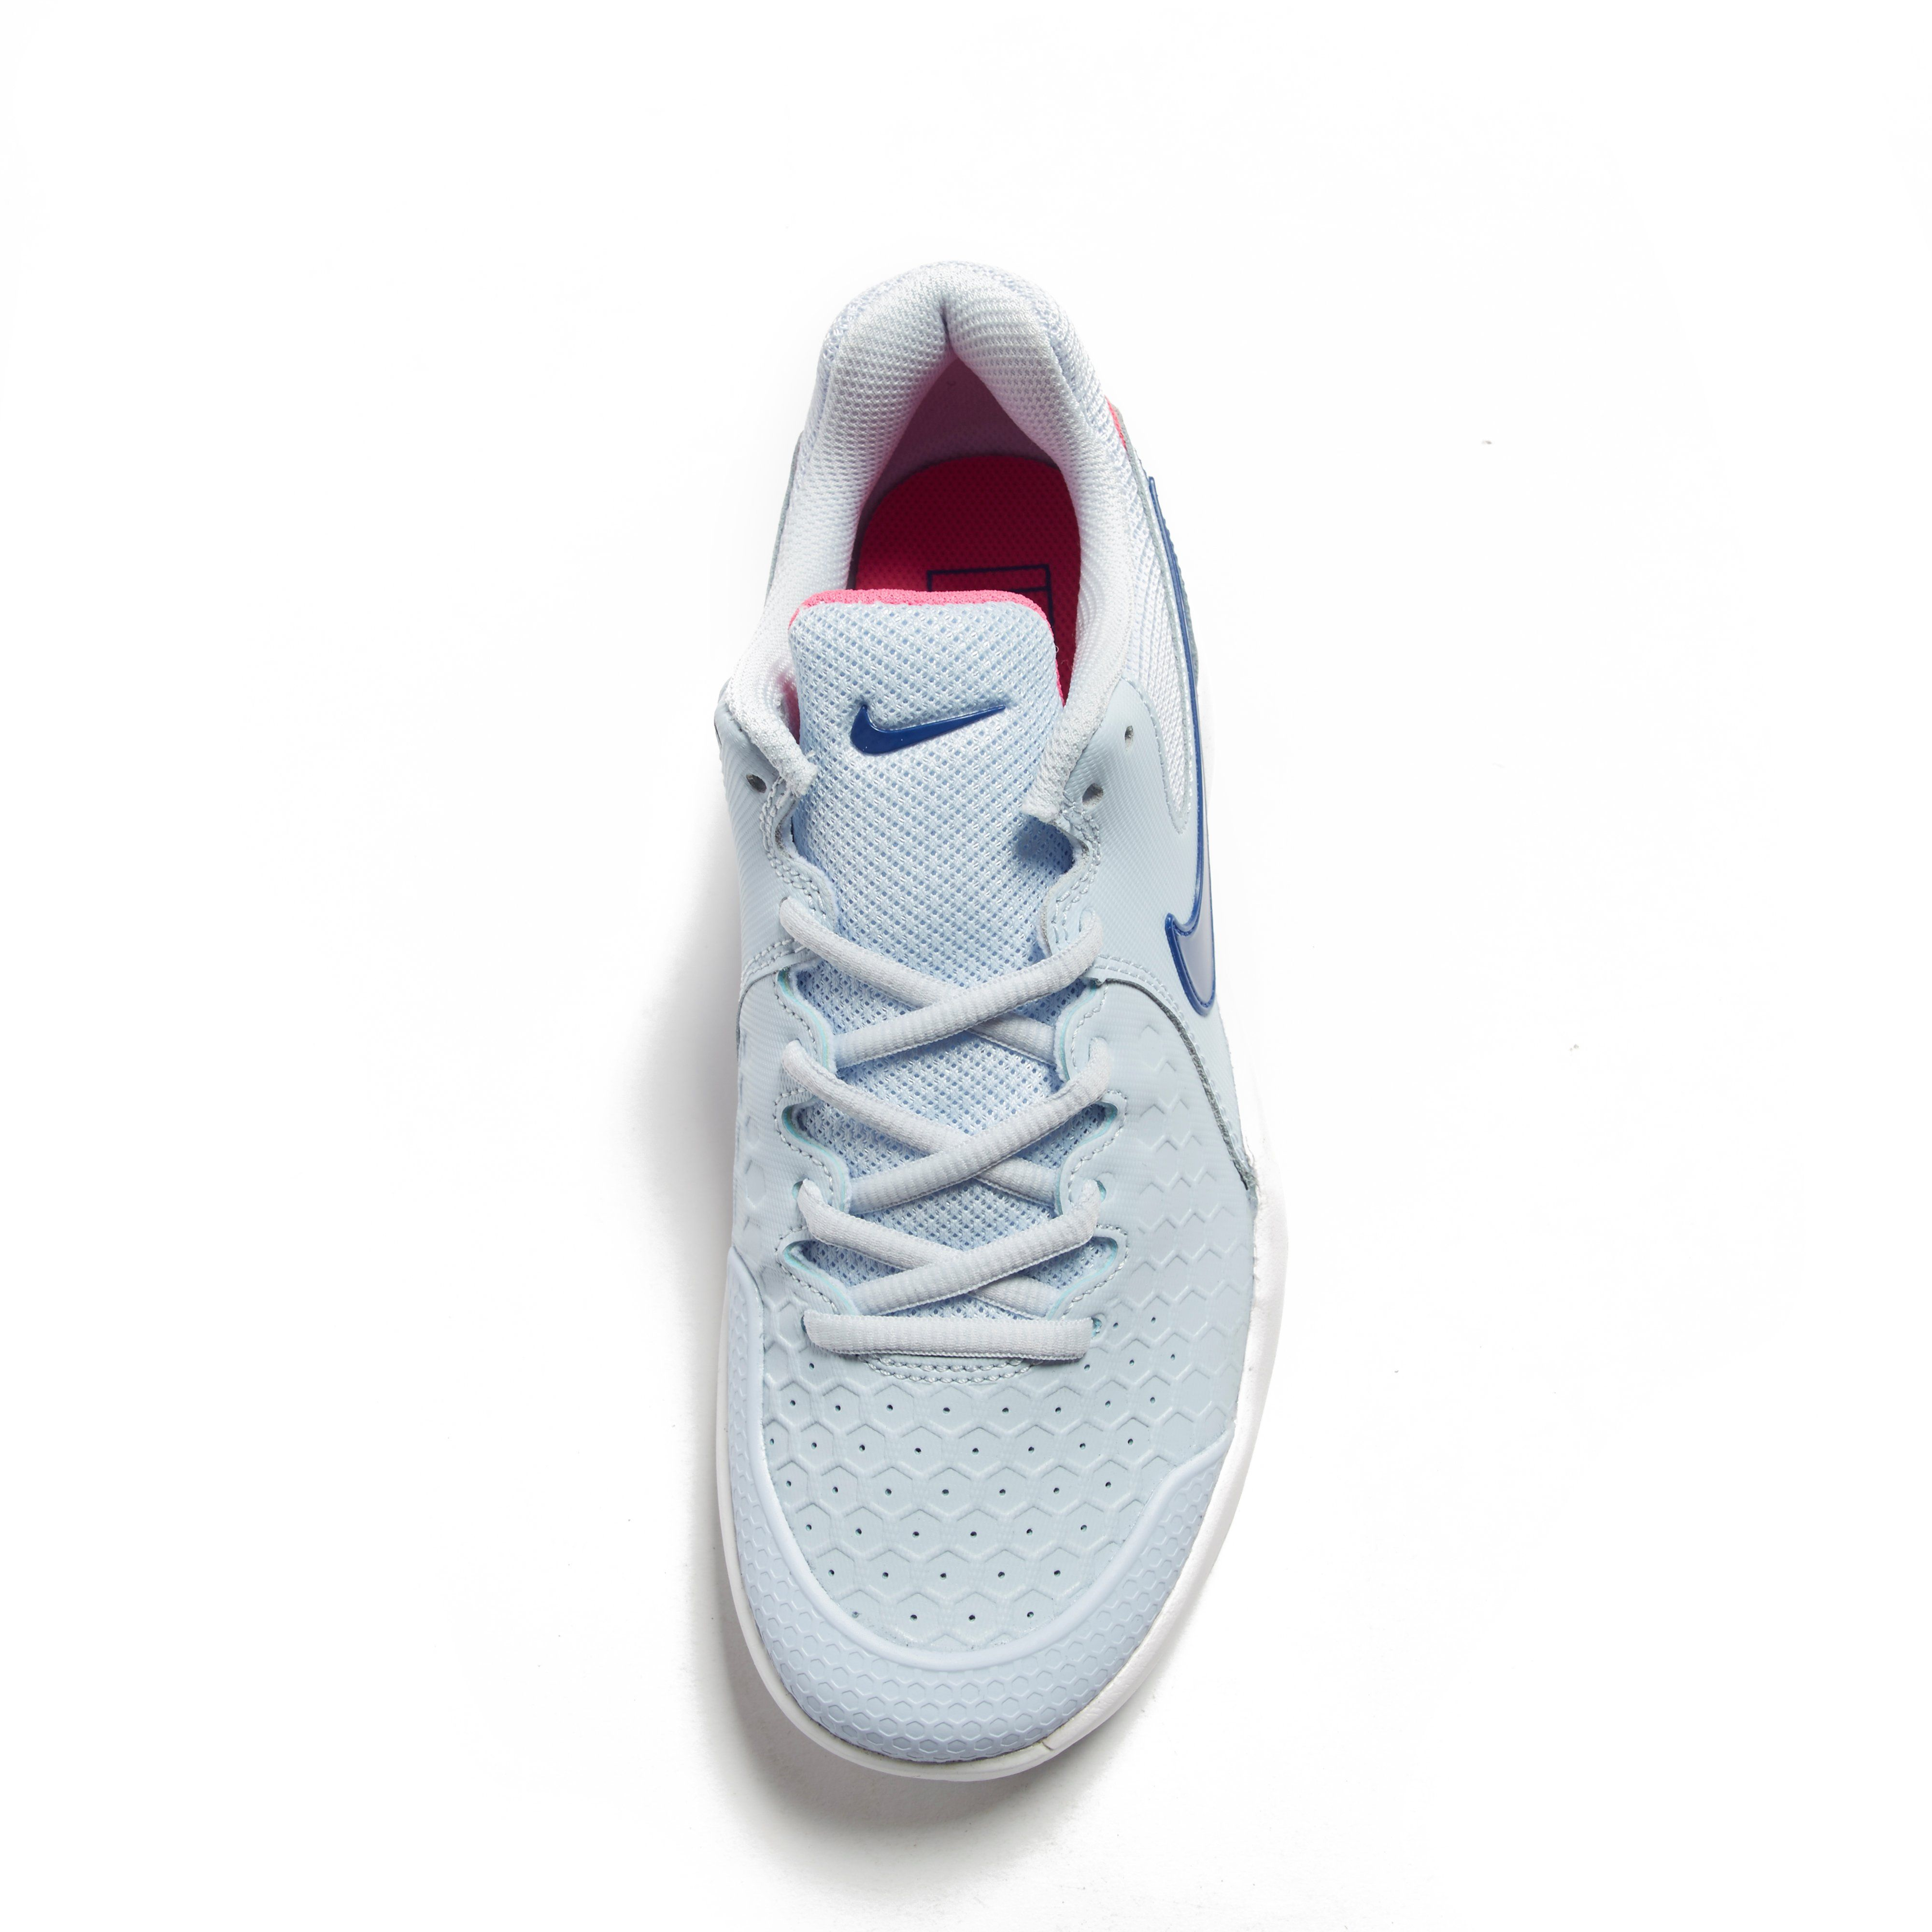 Nike Court Air Zoom Resistance Women's Tennis Shoes